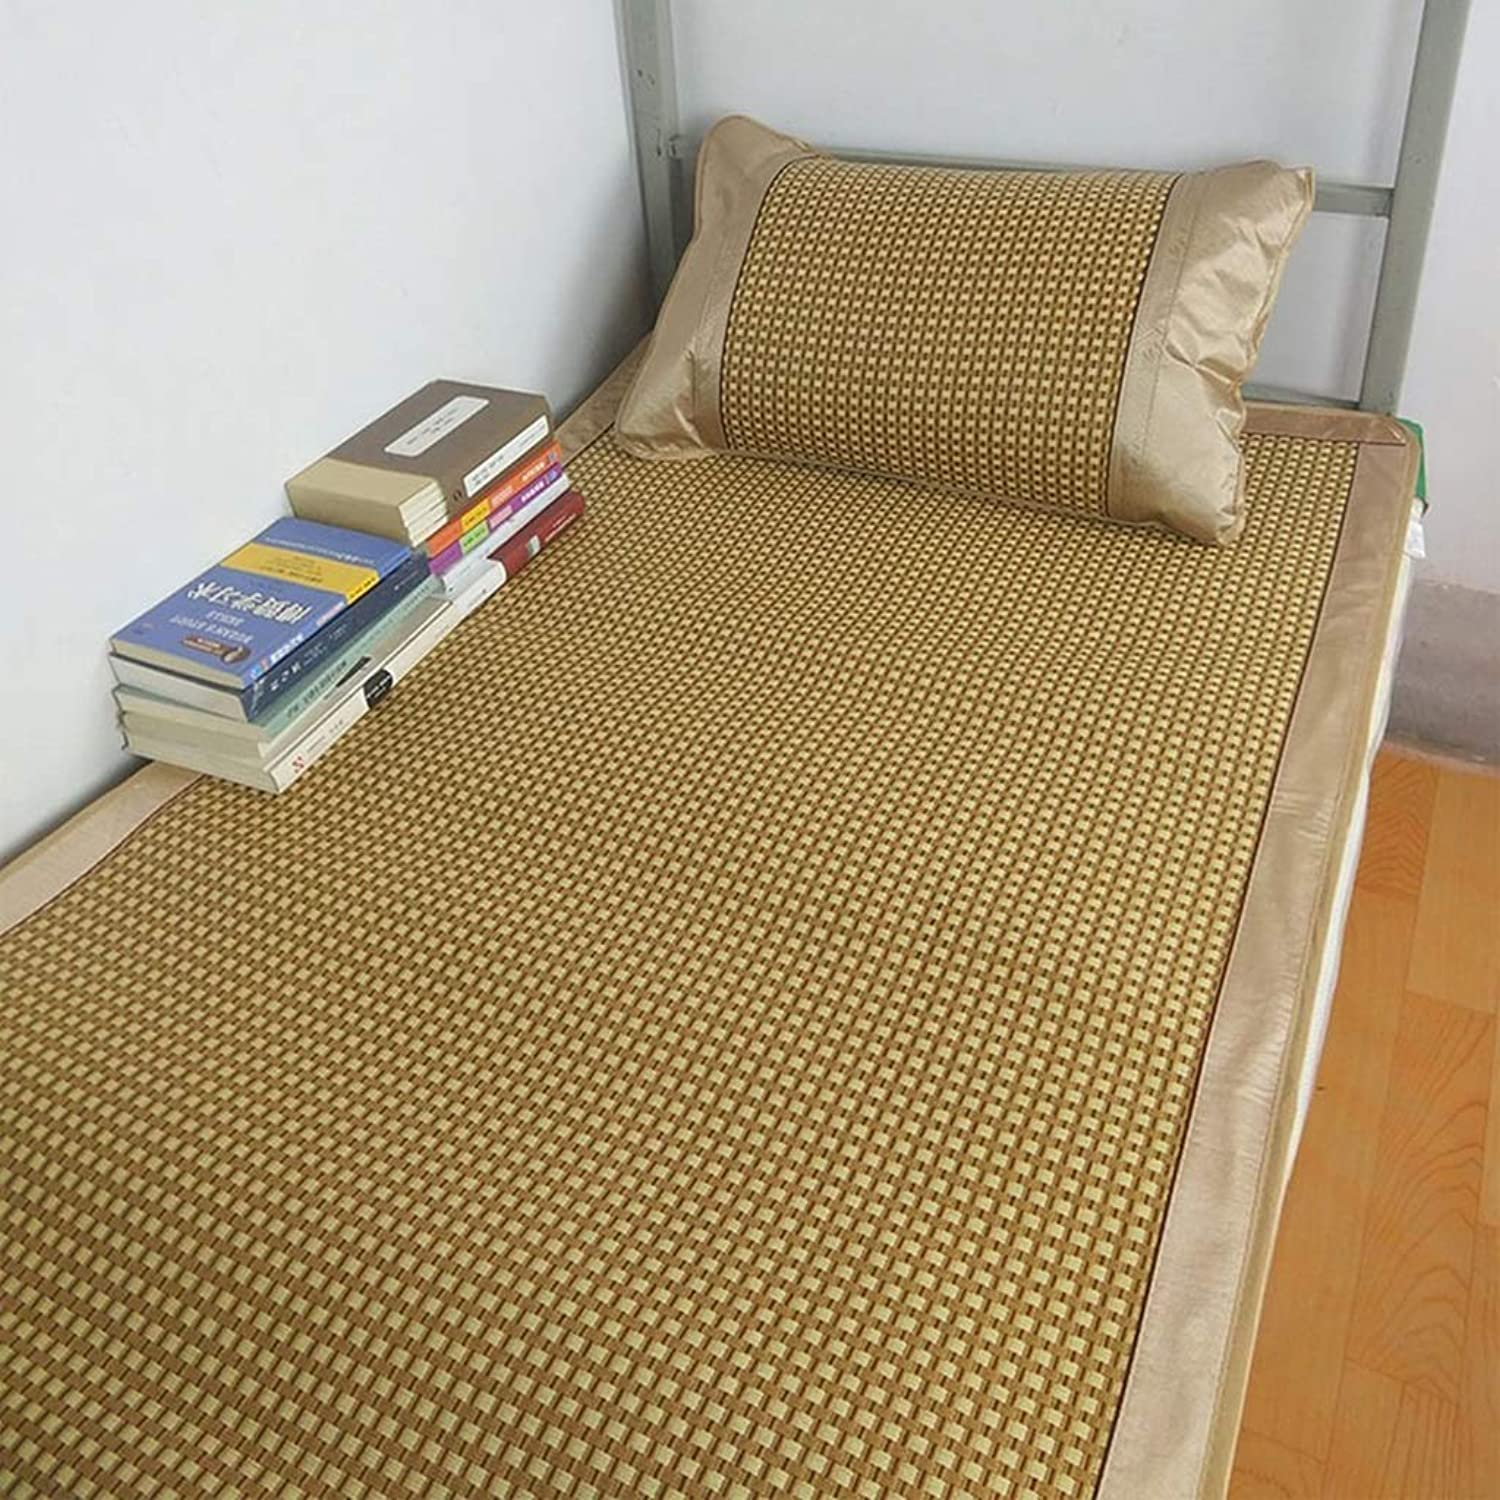 I will take action now Mattress Rattan Grass Sleeping mat Summer Foldable Smooth Soft Breathable Individual Student Dormitory Double Summer Mattress I will take action now (Size   90X190cm)